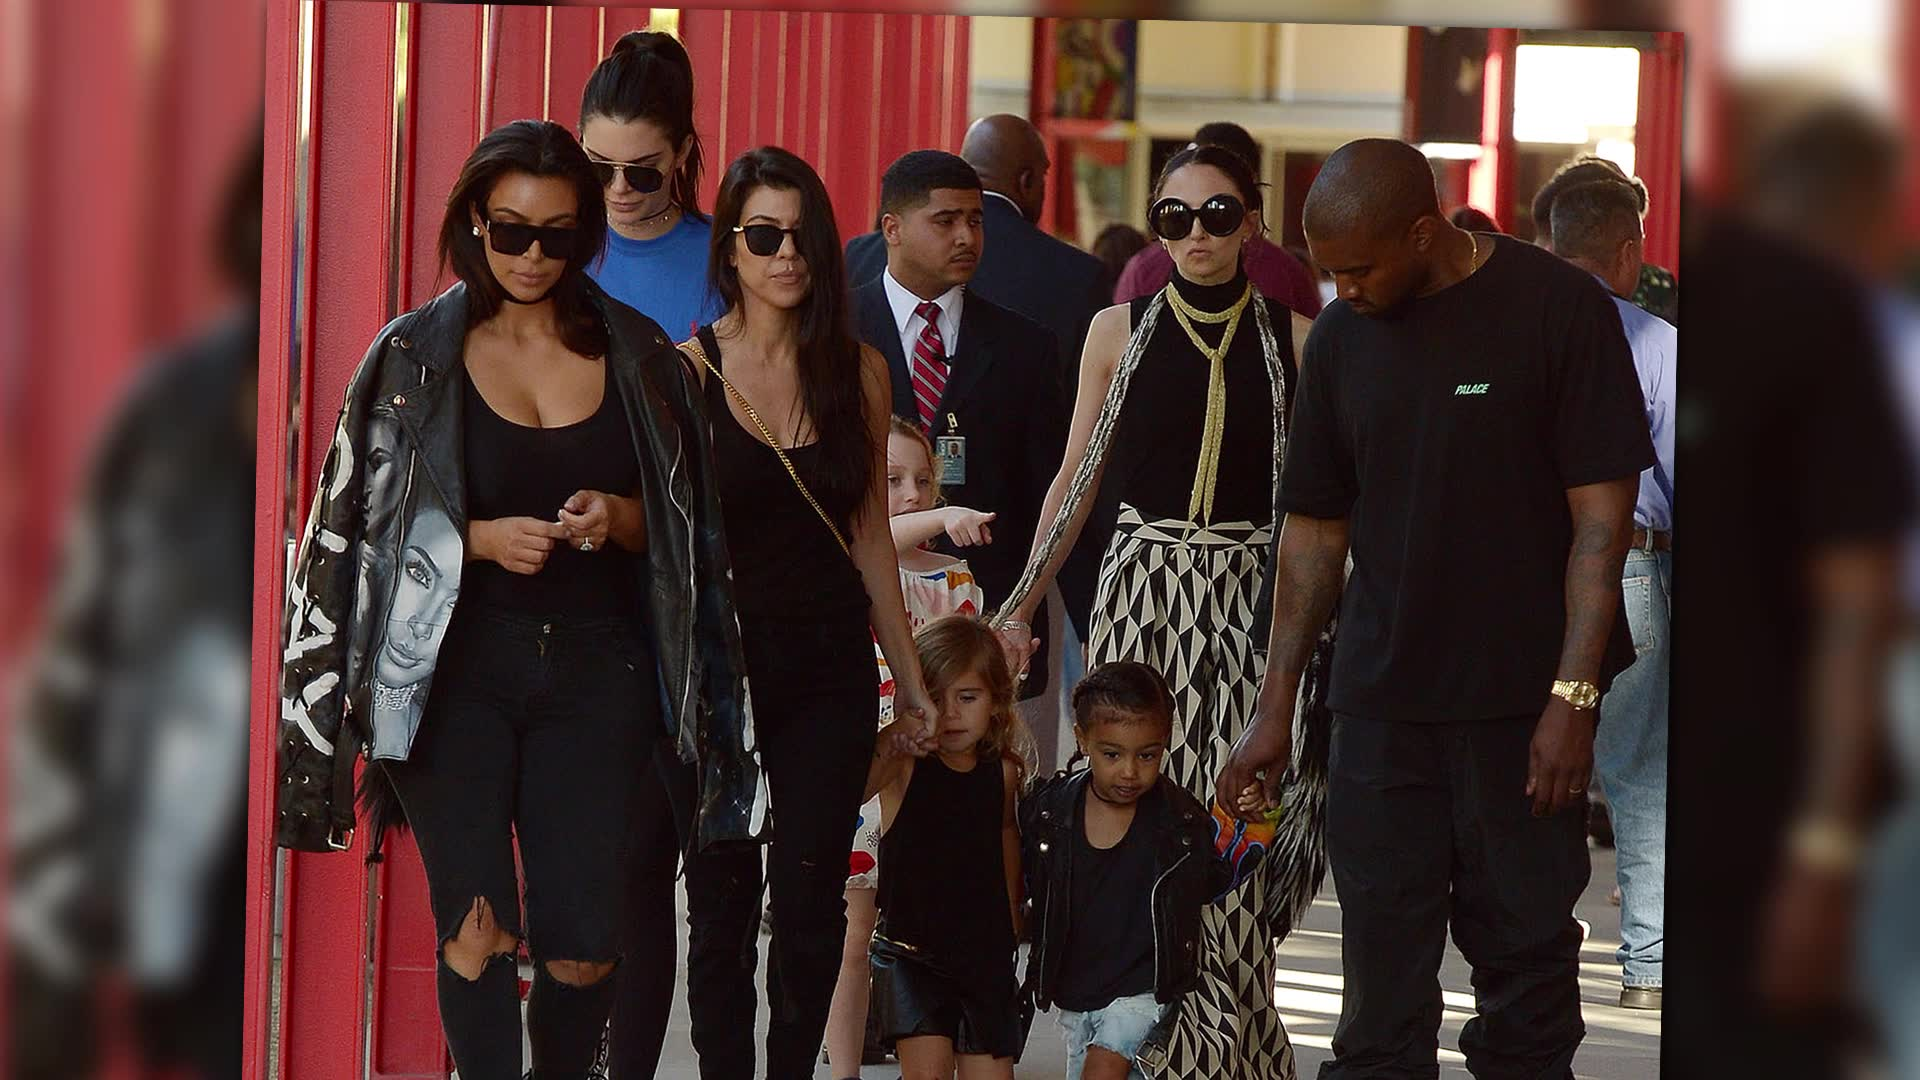 Kanye West and Kardashian Family Check Out Art at LACMA